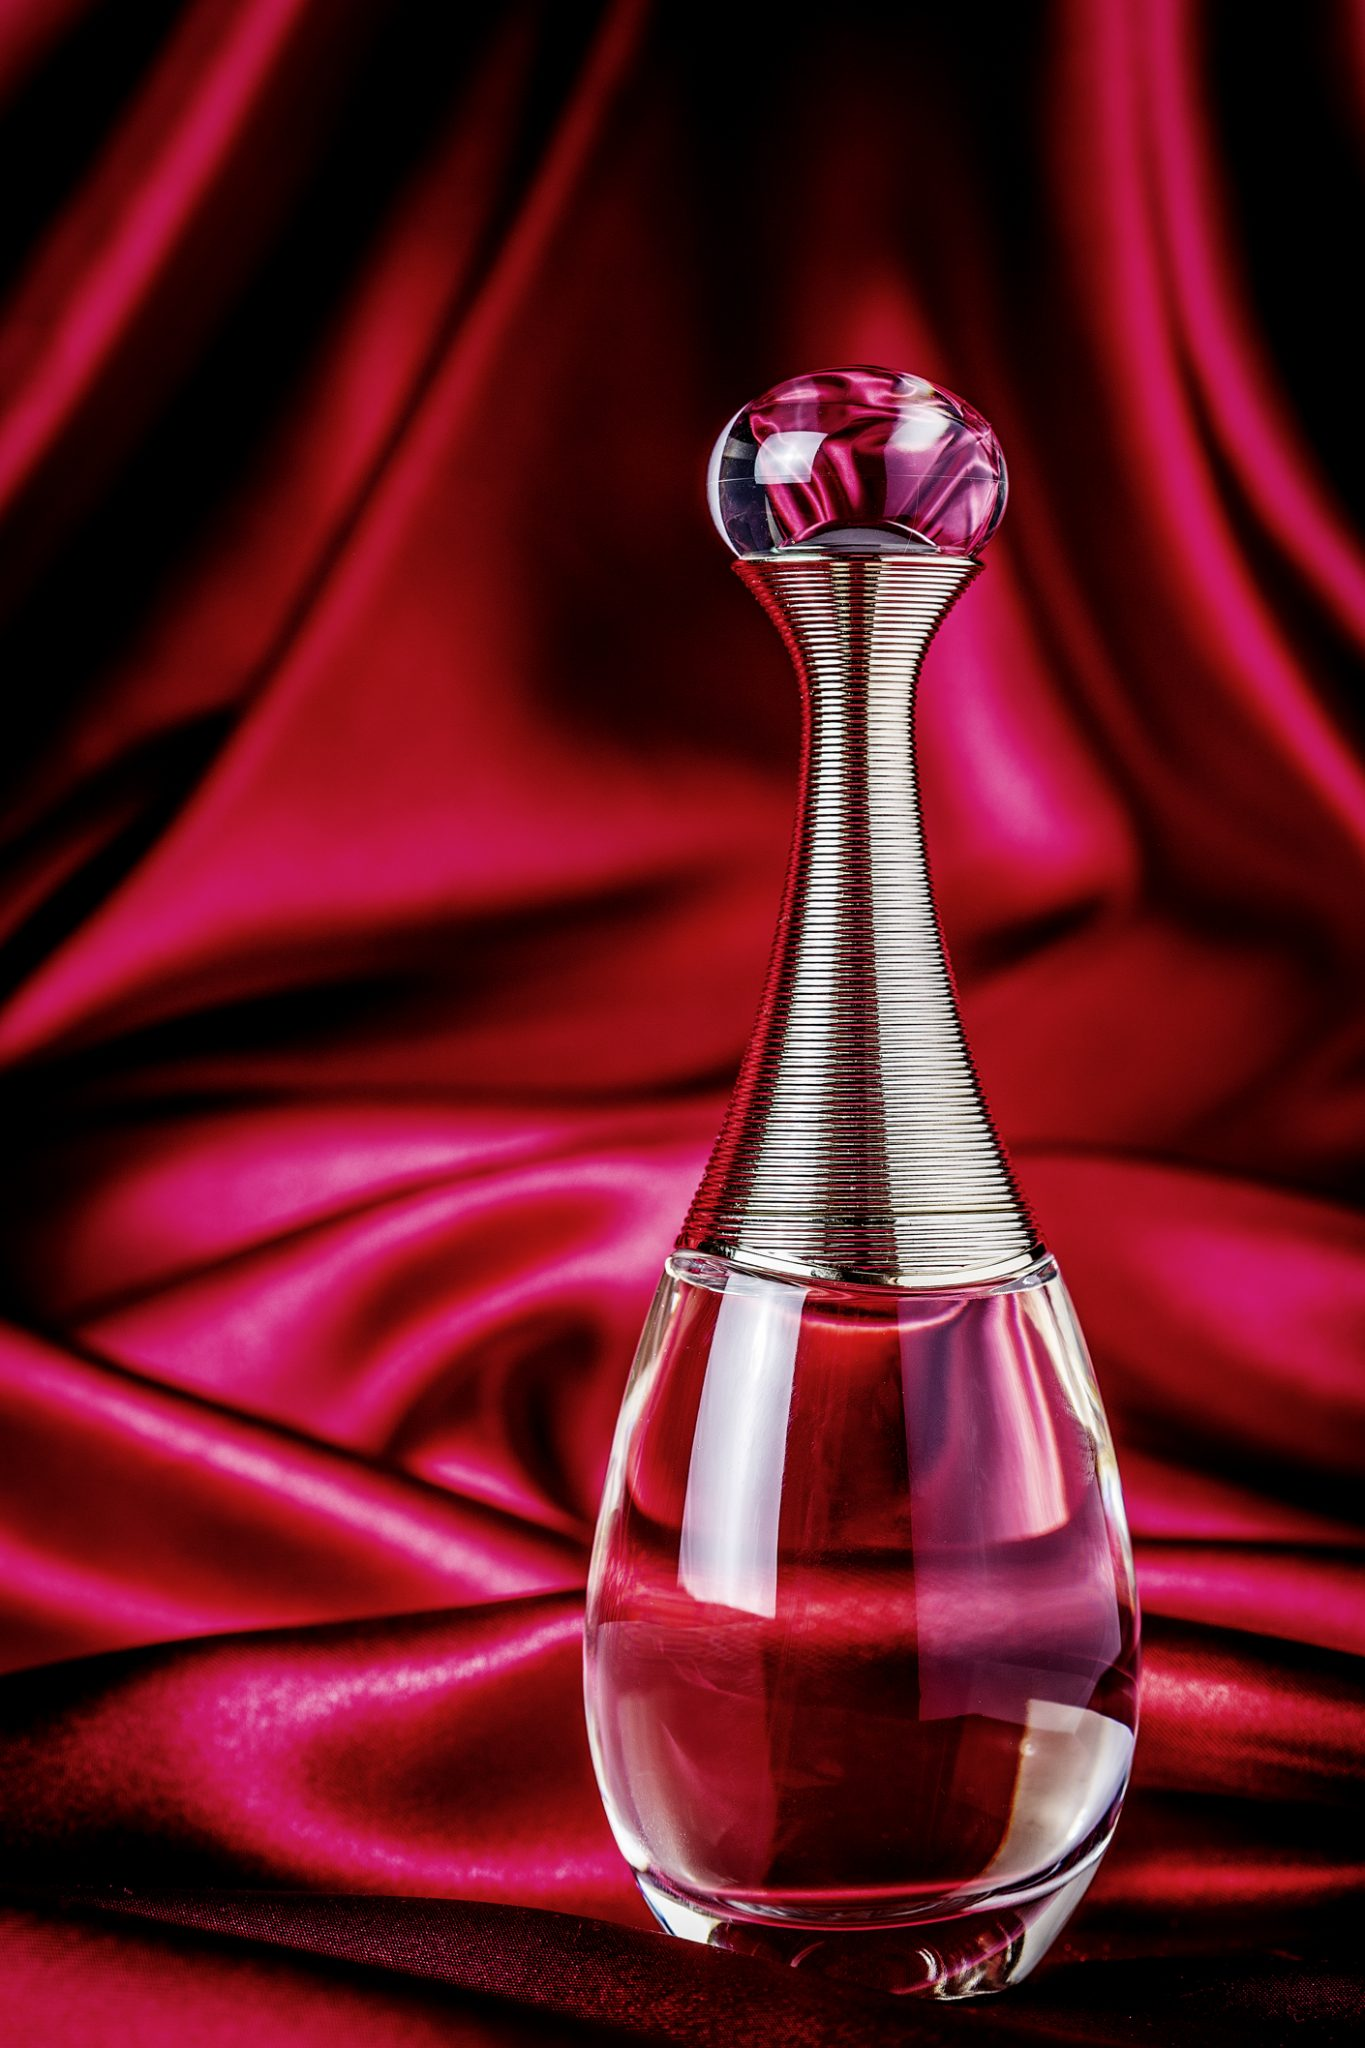 product-photography-for-jadore-perfume-